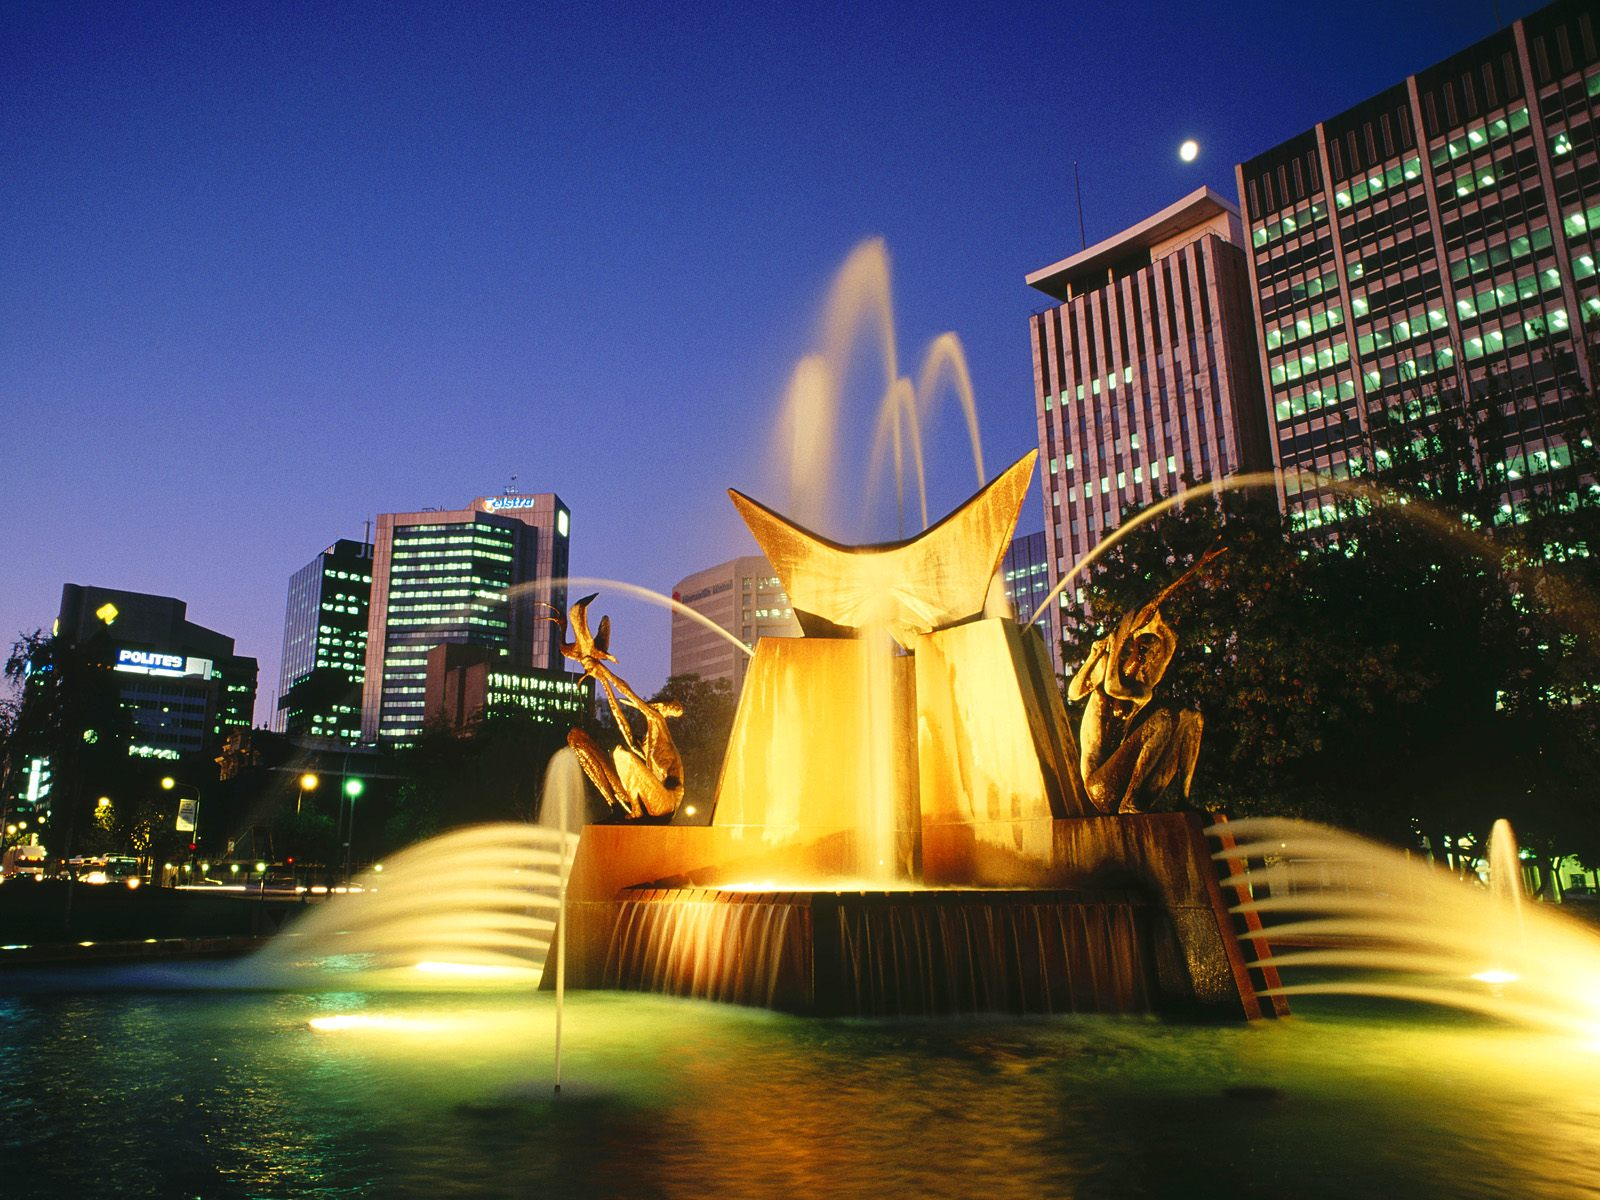 https://i2.wp.com/images4.fanpop.com/image/photos/23300000/Victoria-Square-Fountain-Adelaide-australia-23340375-1600-1200.jpg